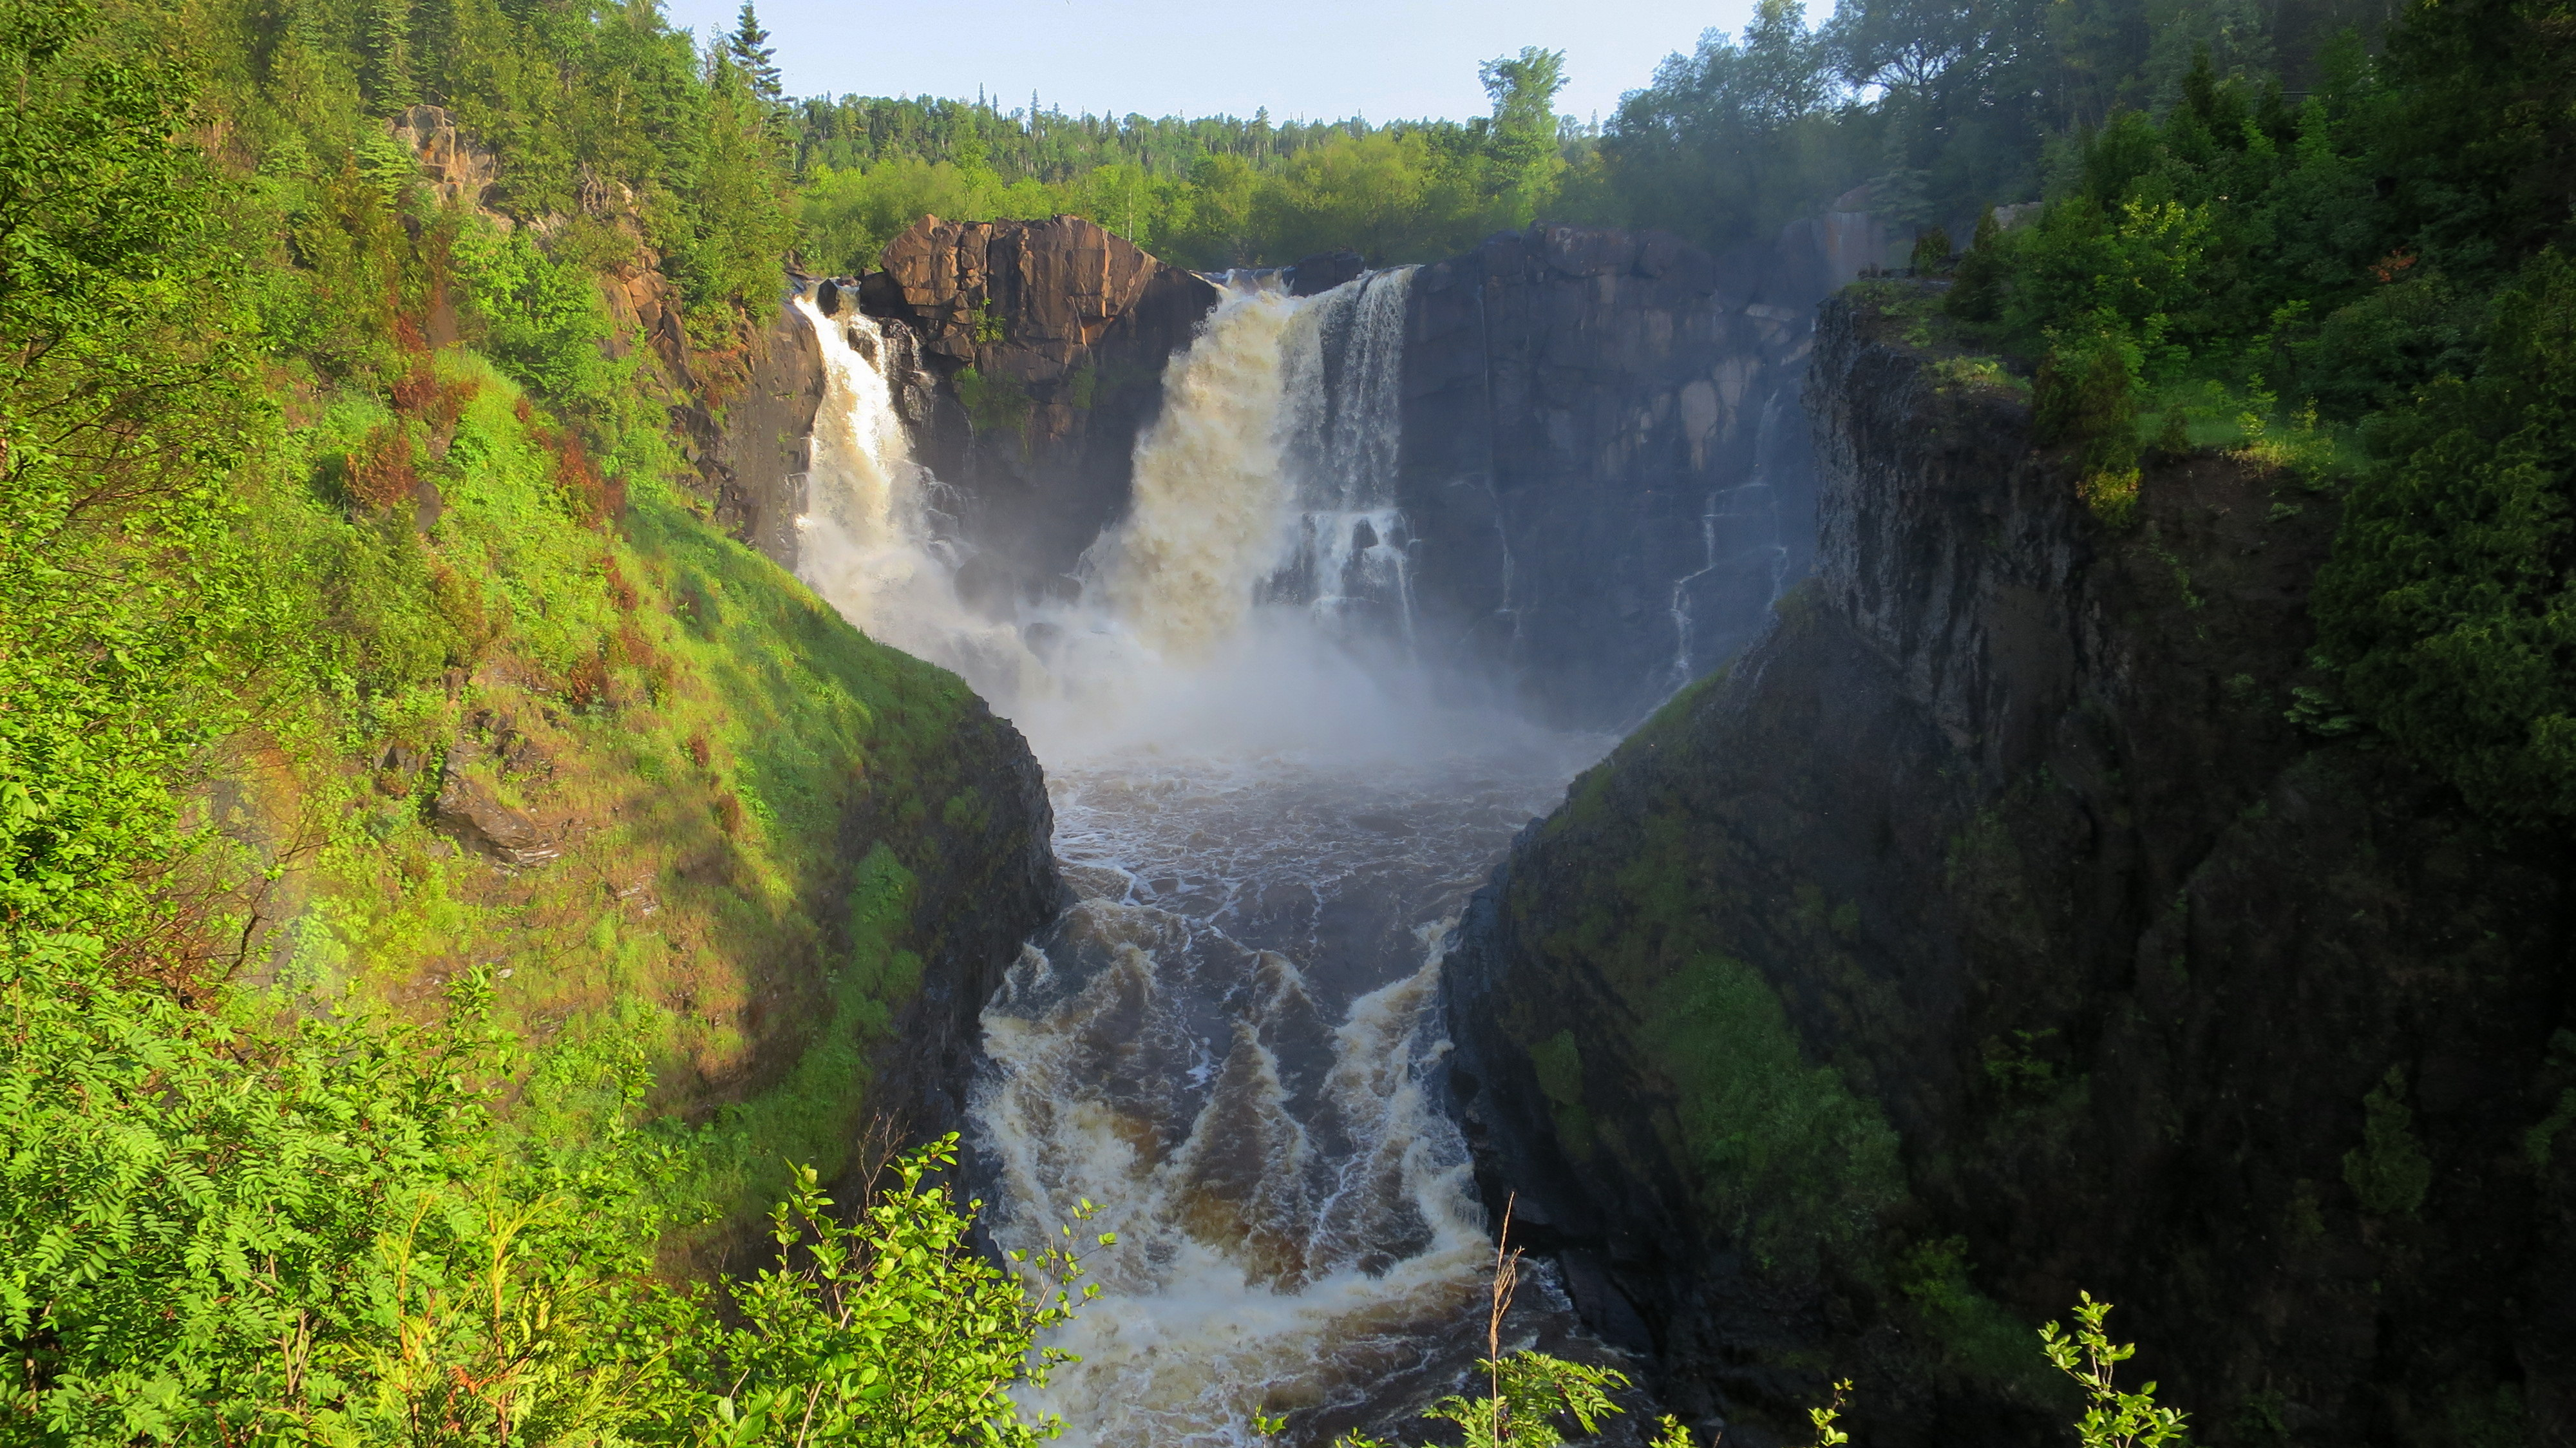 grand portage This park is unique in so many ways: it borders canada, it has minnesota's tallest waterfalls, it's one of the smallest state parks in minnesota, and the grand portage band of chippewa play a unique role in it's ownership and management.